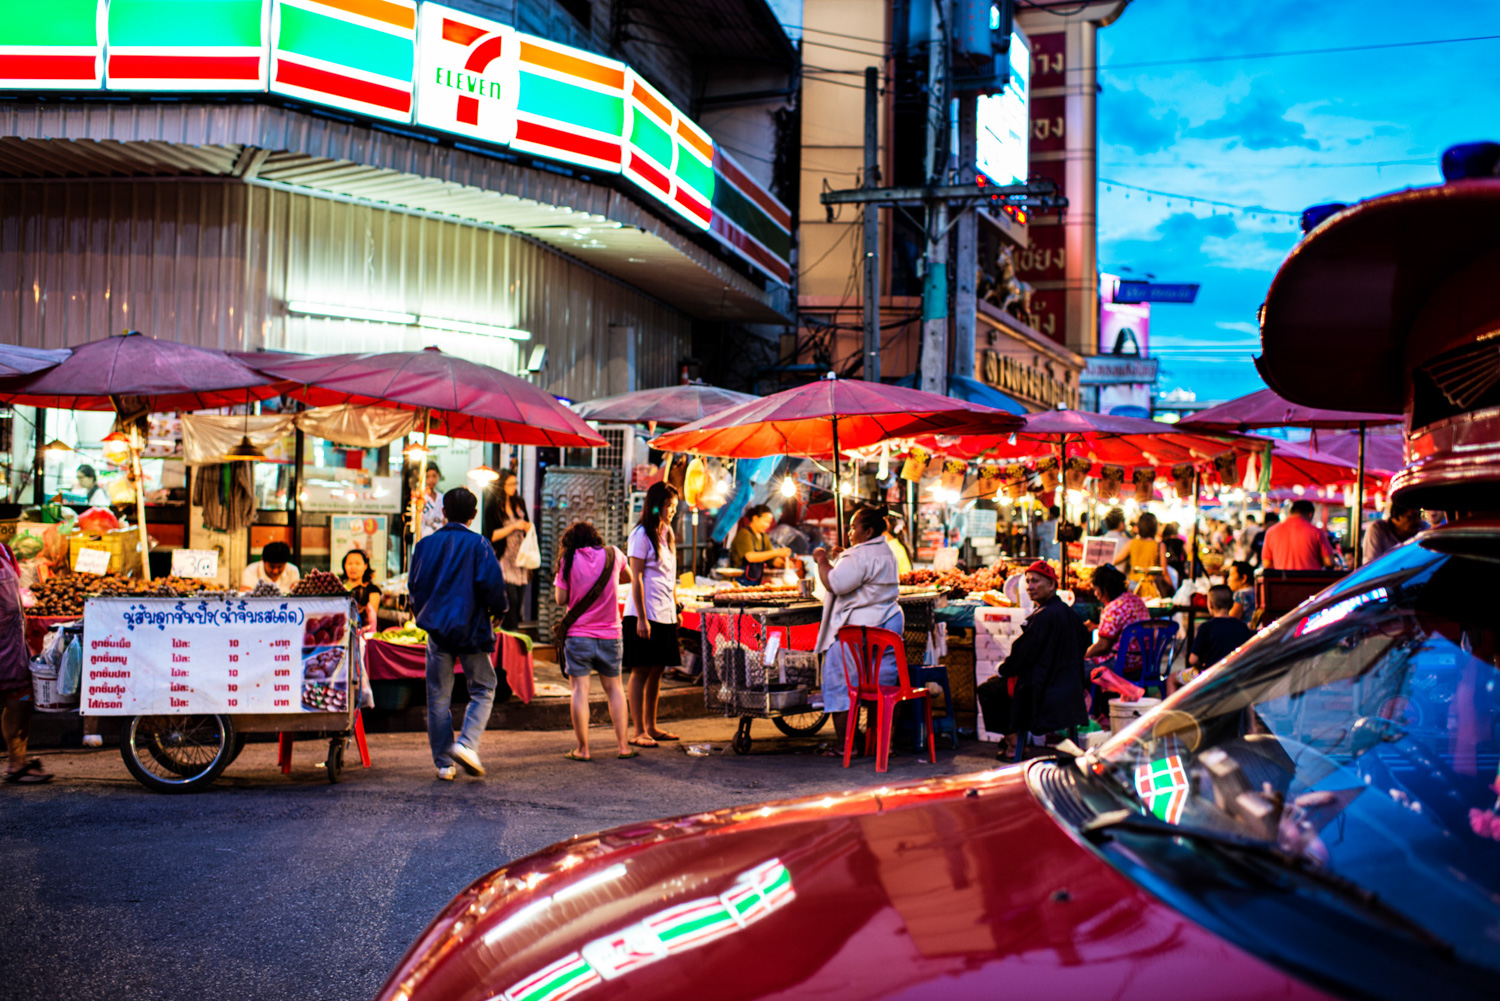 Chiang Mai street scene in the evening with a 35mm lens